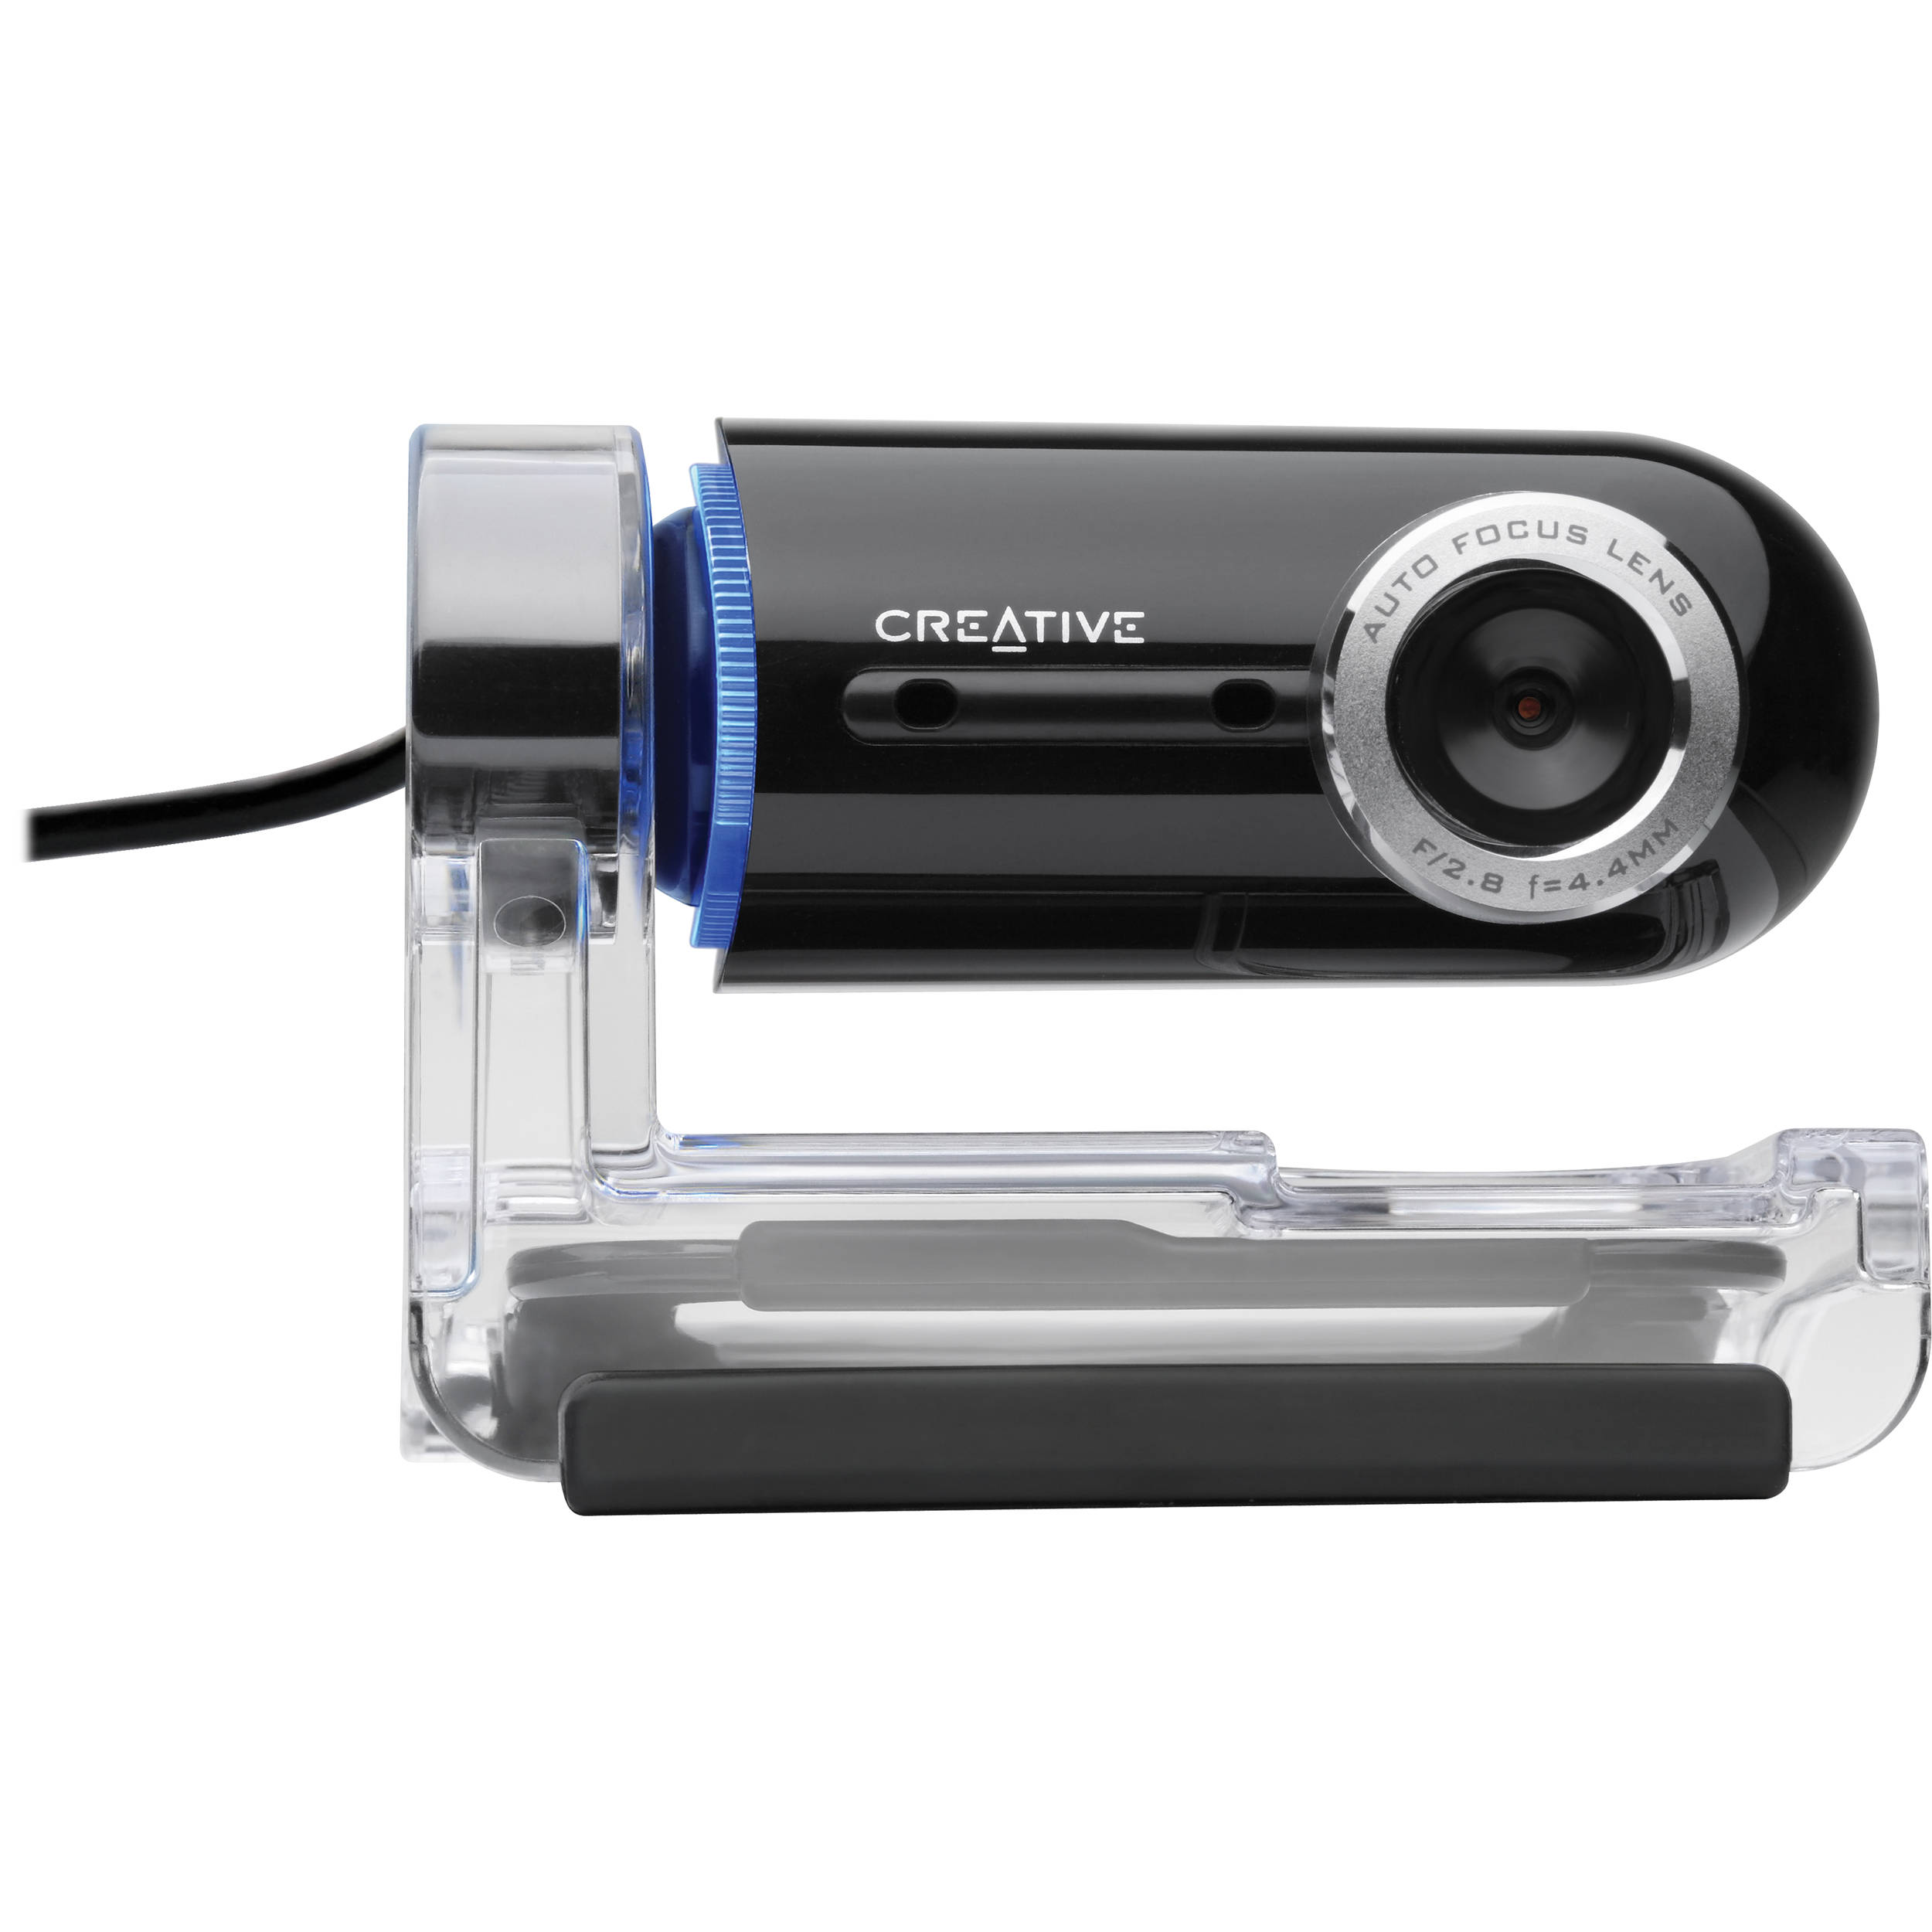 Creative Live! Cam Optia Webcam Driver for Windows Download